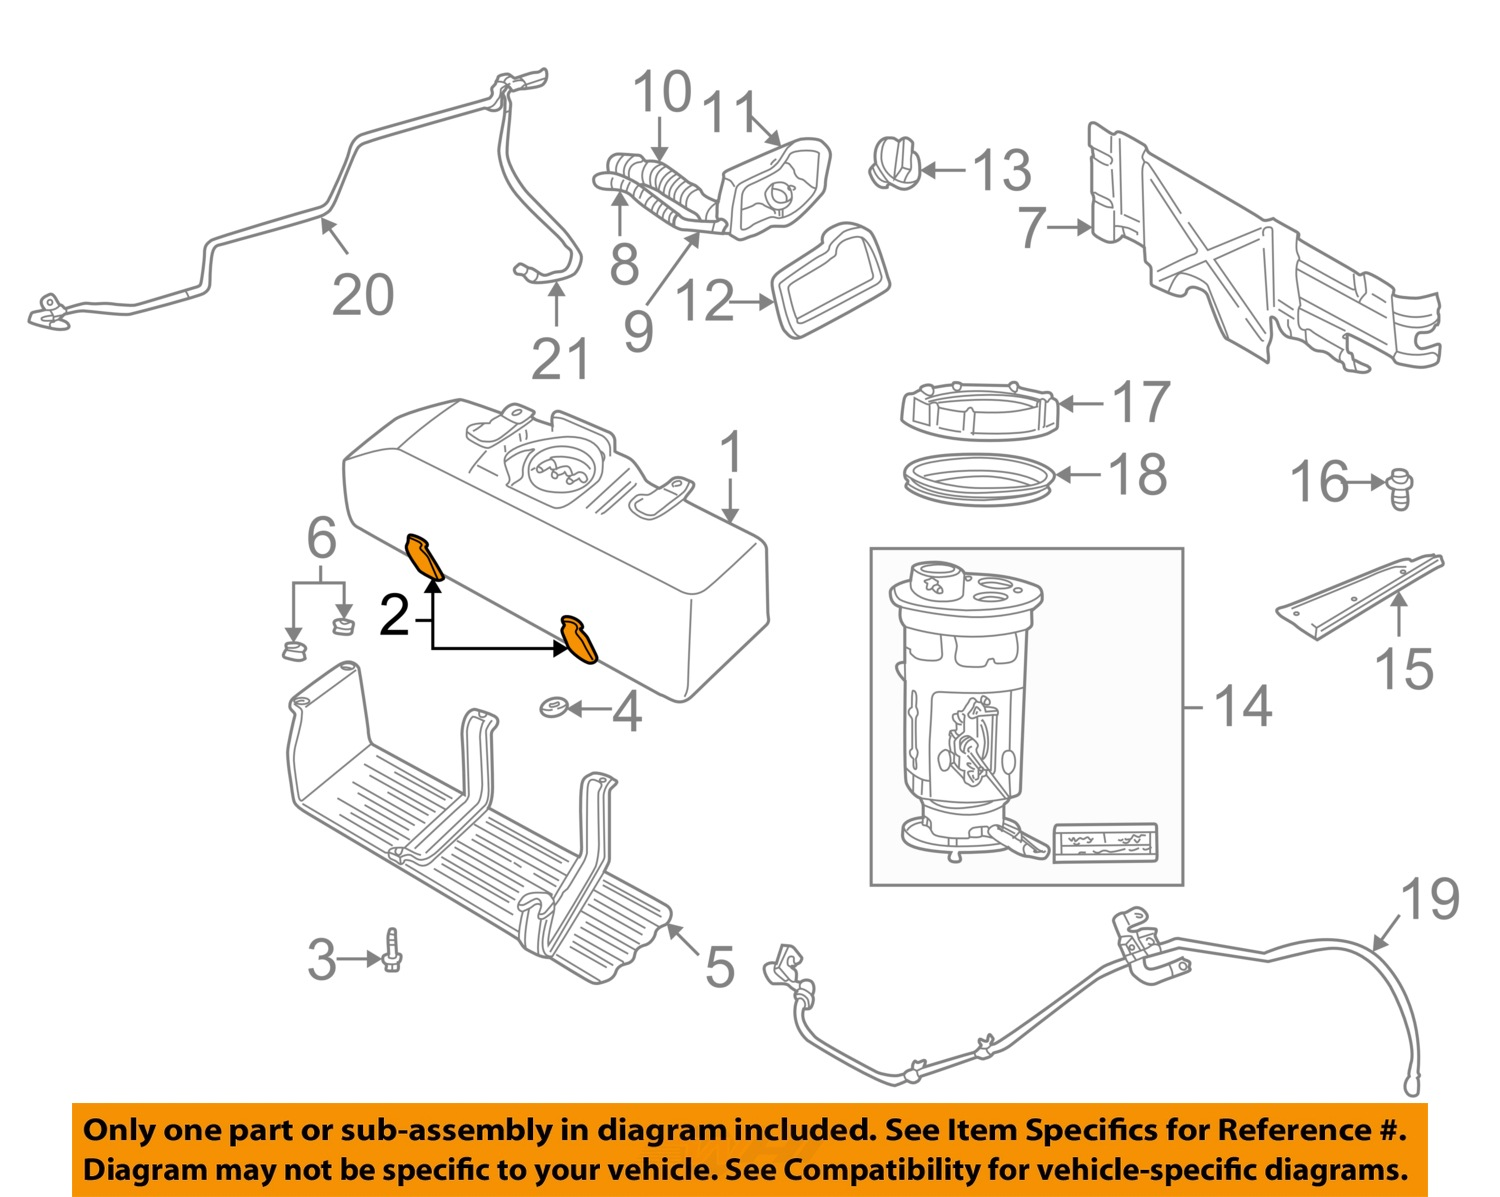 87 dodge dakota fuel tank 87 free engine image for user 2010 ford f 150 wiring diagram 2010 ford f 150 tailgate diagram